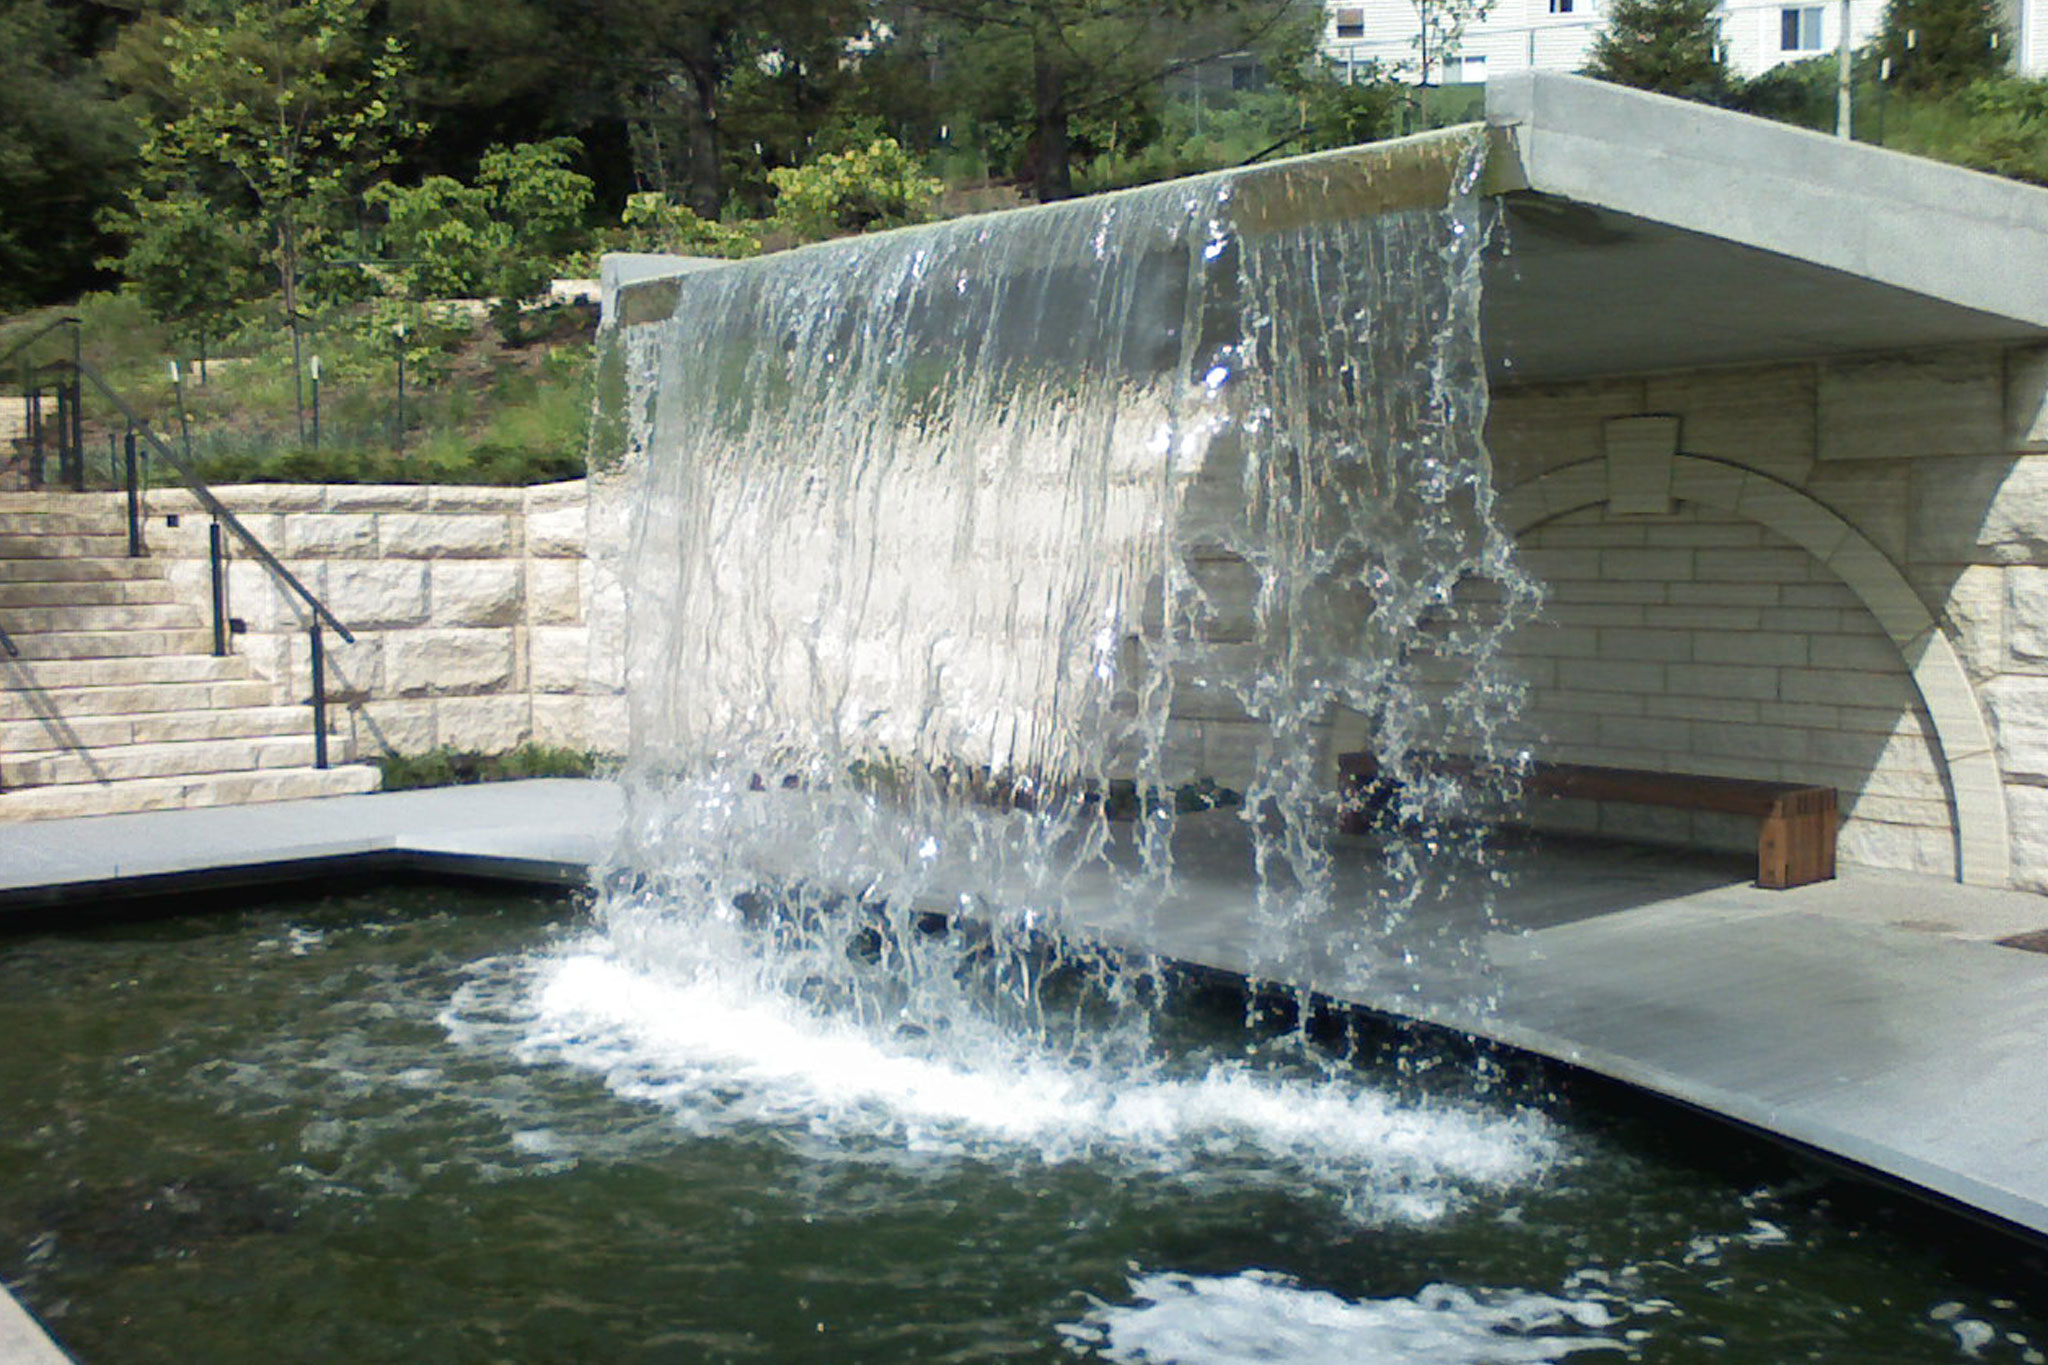 Des moines botanical garden waterfall delta fountains for Waterfall fountain